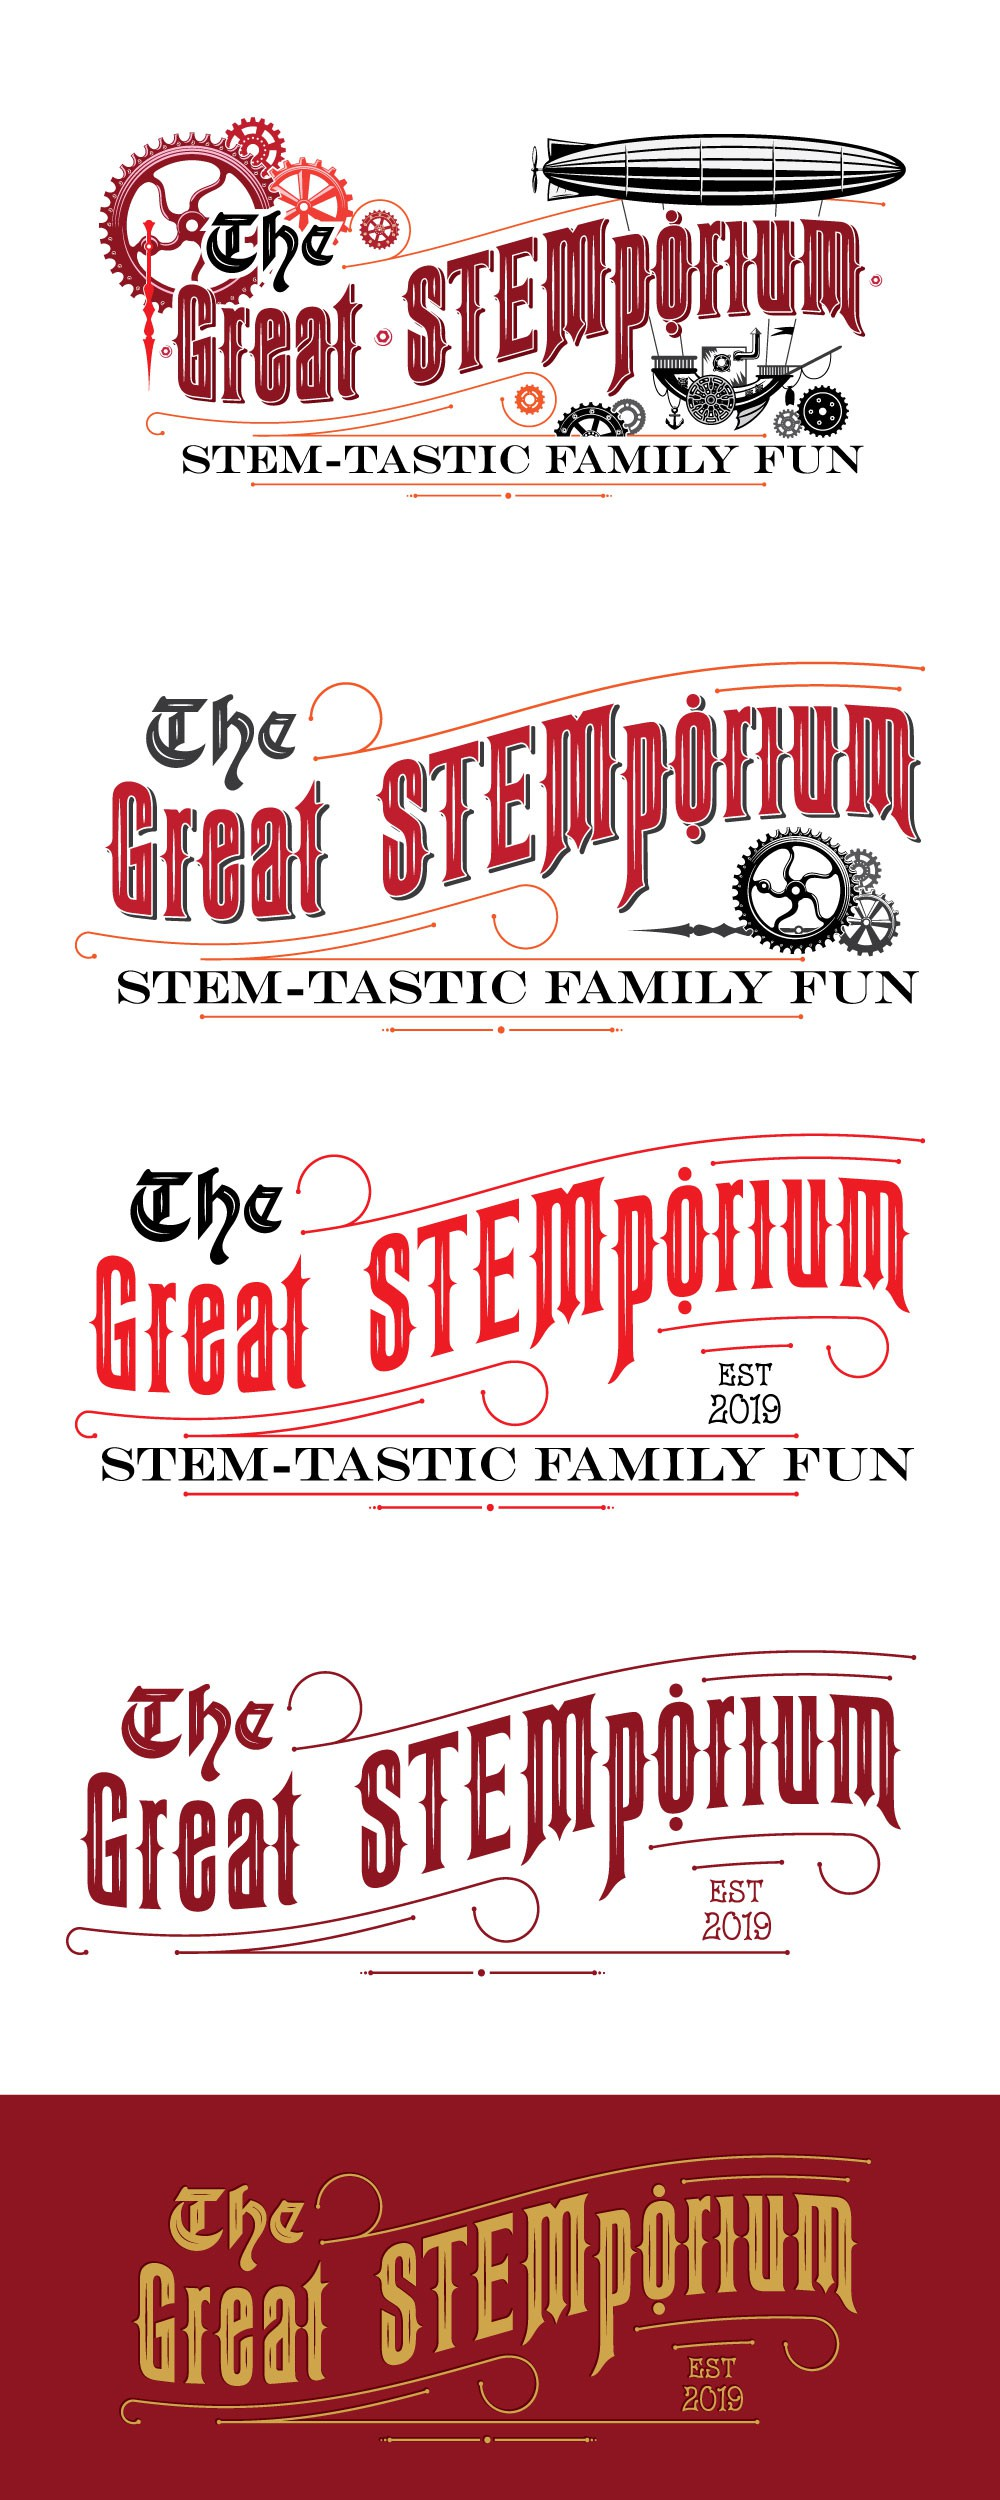 Logo for new business - The Great STEMporium